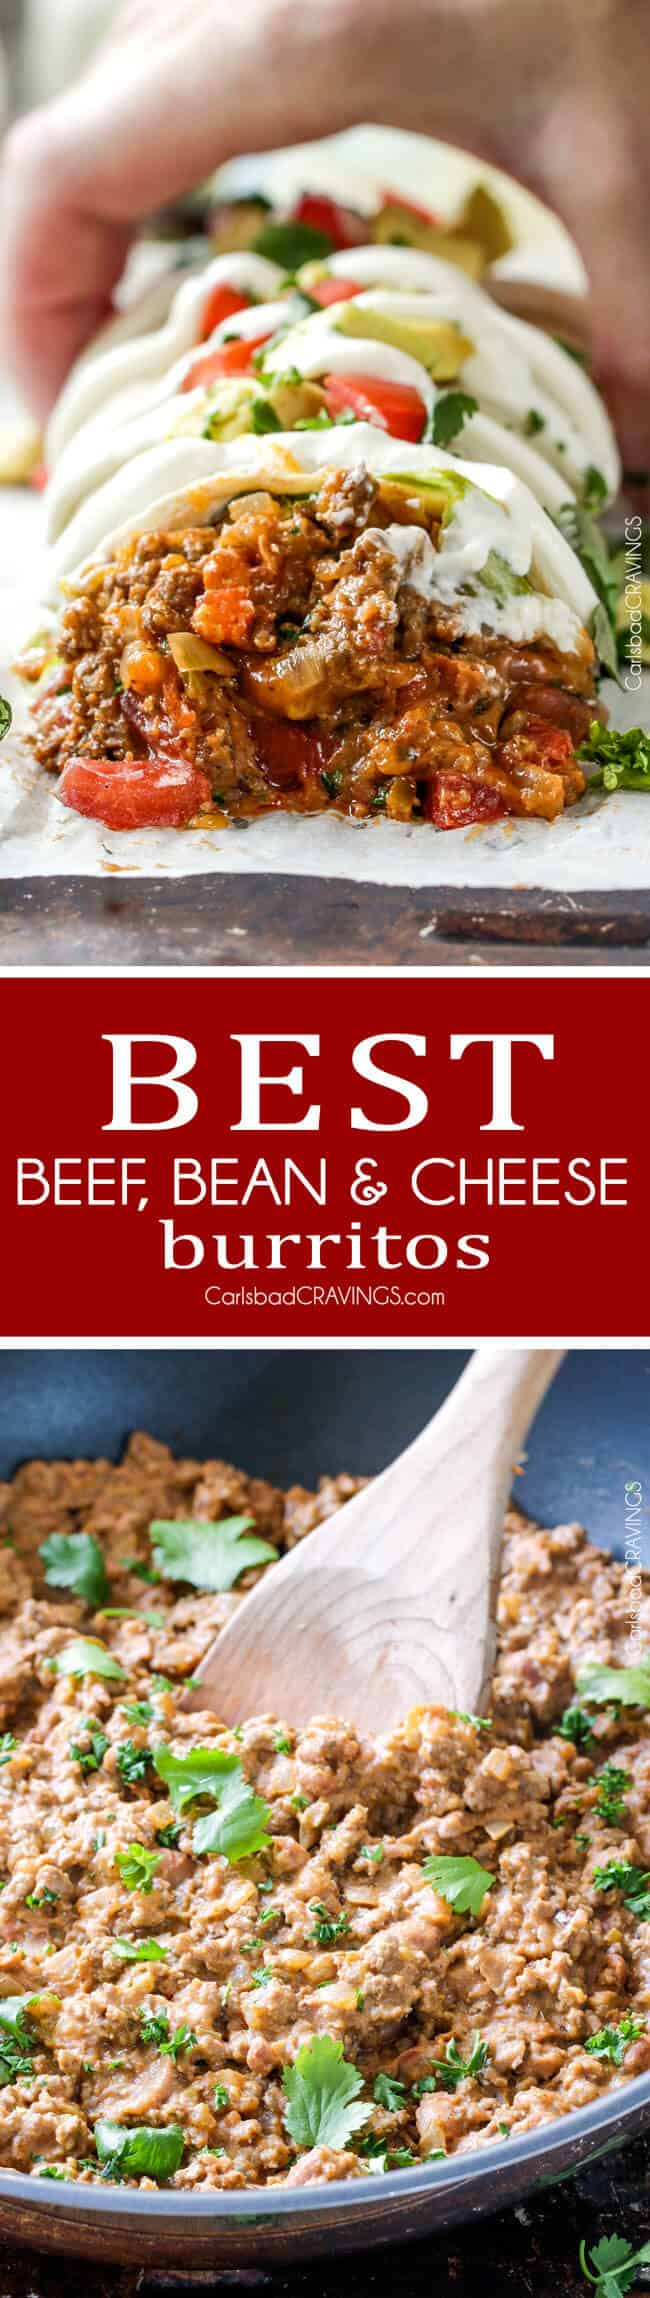 Best-Beef-Bean-and-Cheese-Burritos-collage